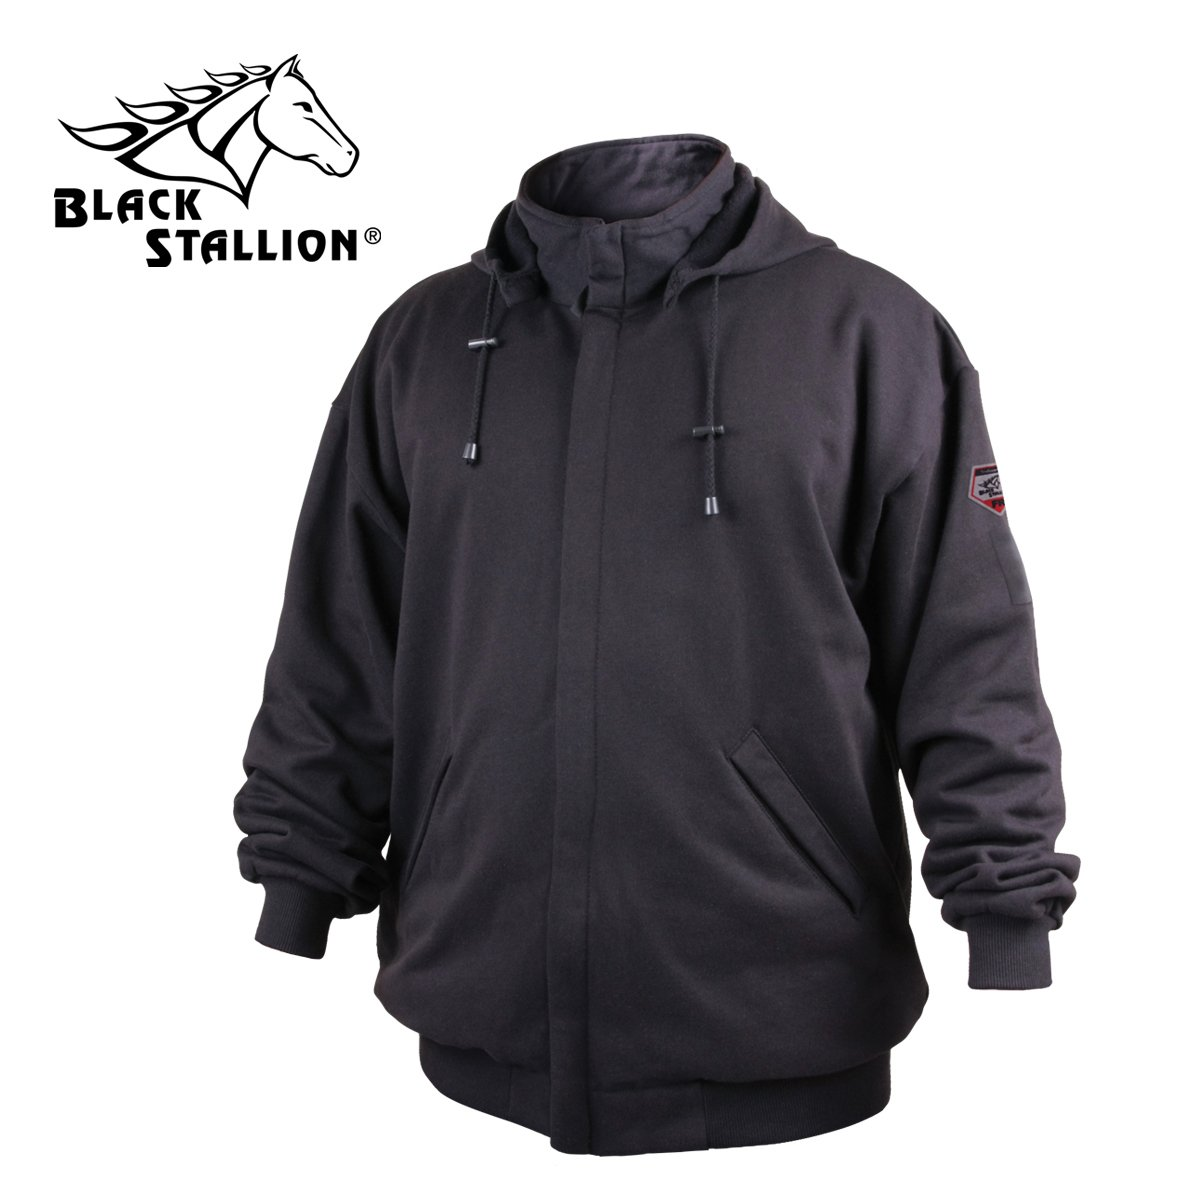 REVCO/BLACK STALLION JF1331-2XL Truguard Cotton Hooded Sweatshirt, Black by REVCO/BLACK STALLION